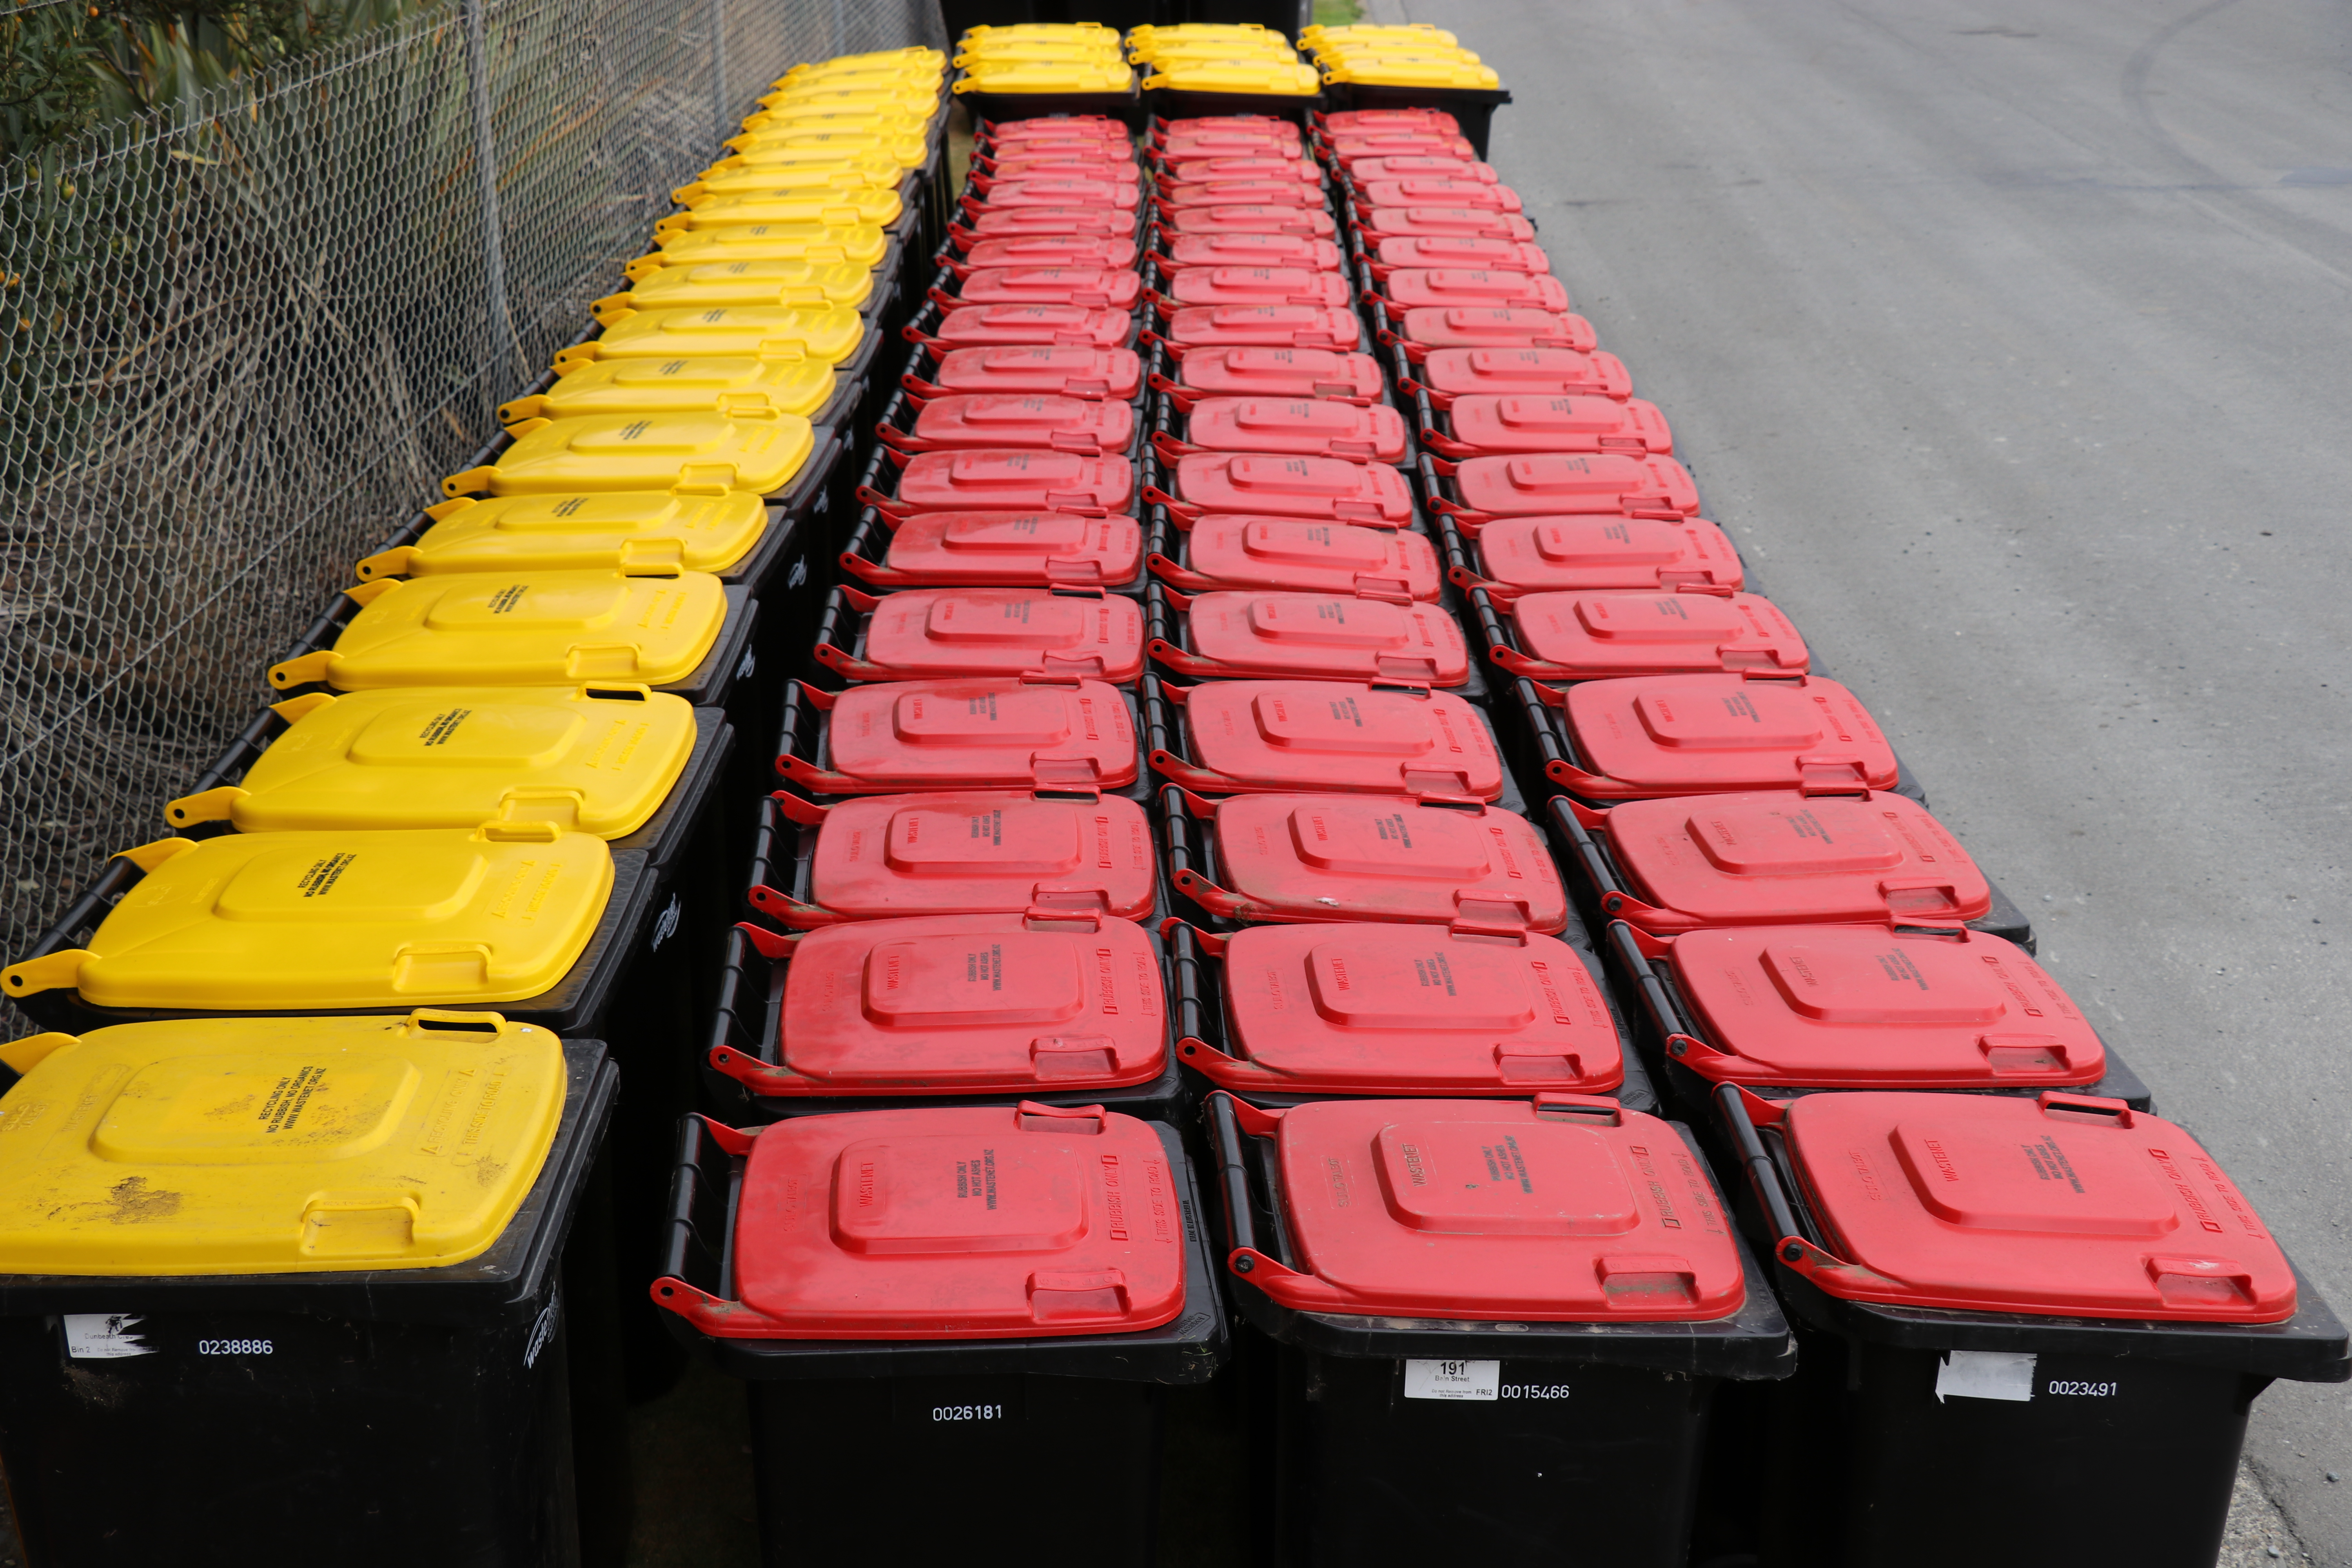 26 yellow recycling bins and 52 red rubbish bins grouped together